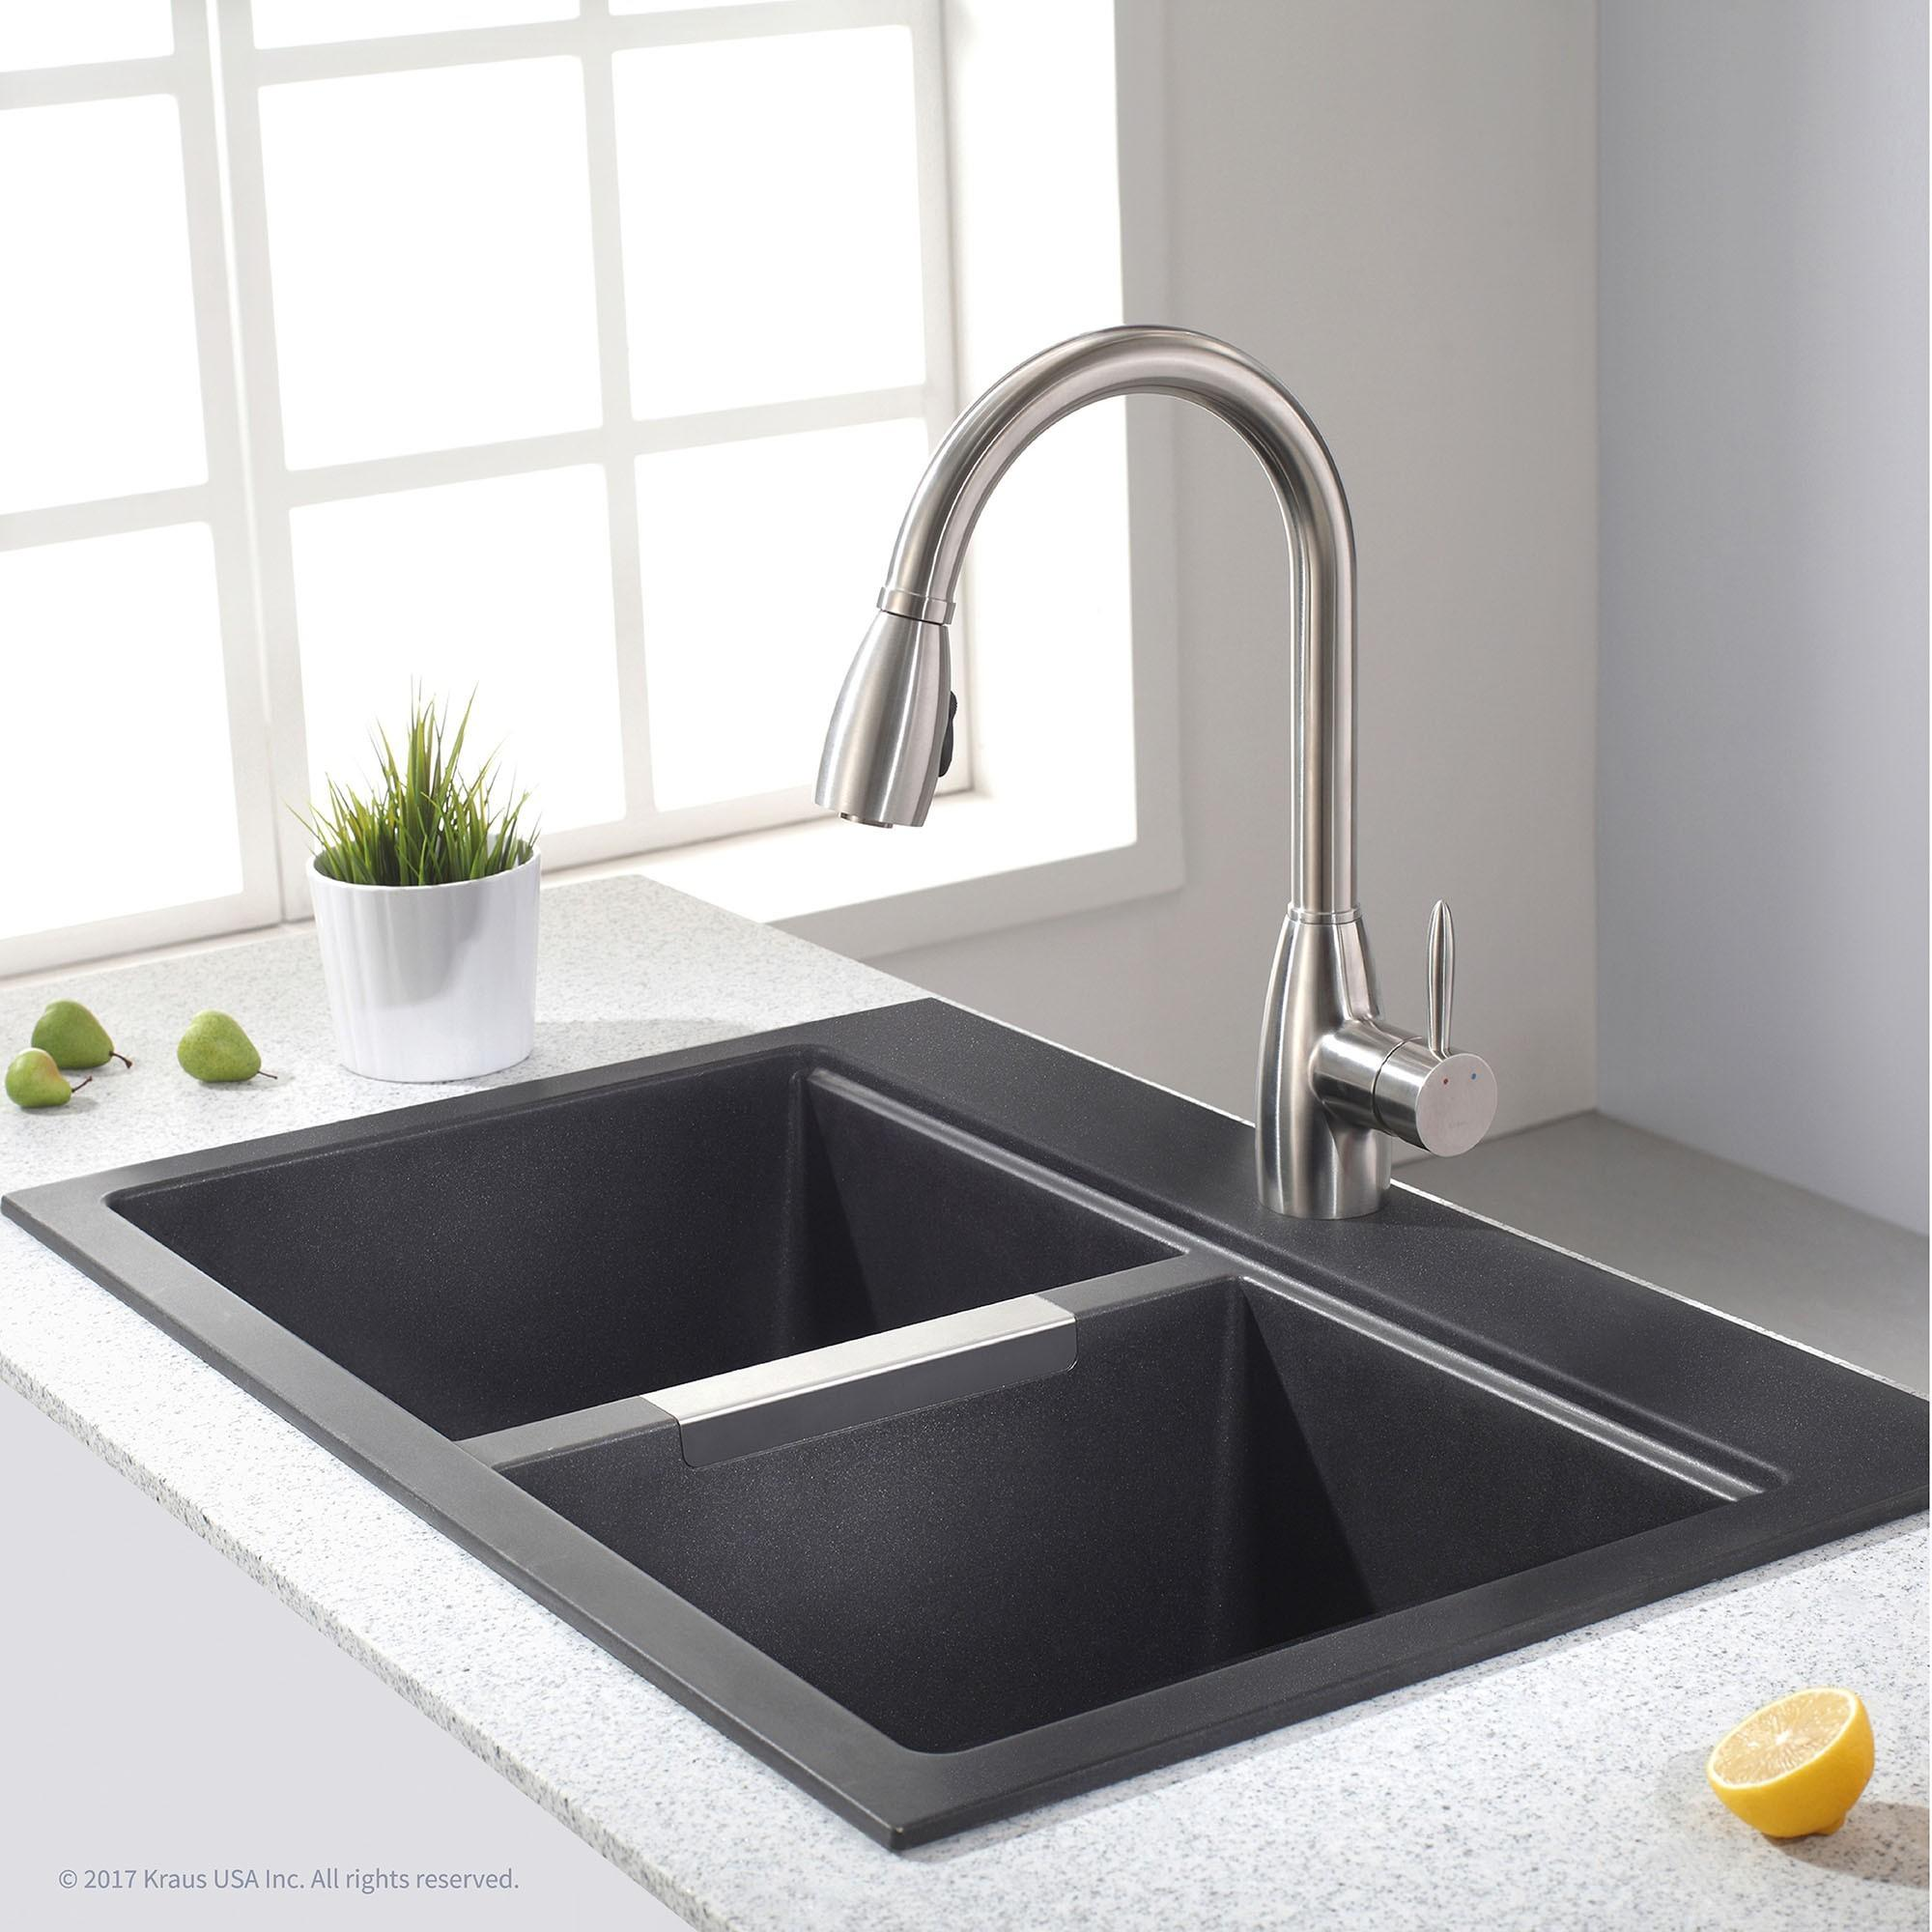 Granite Kitchen Sinks Kraususa